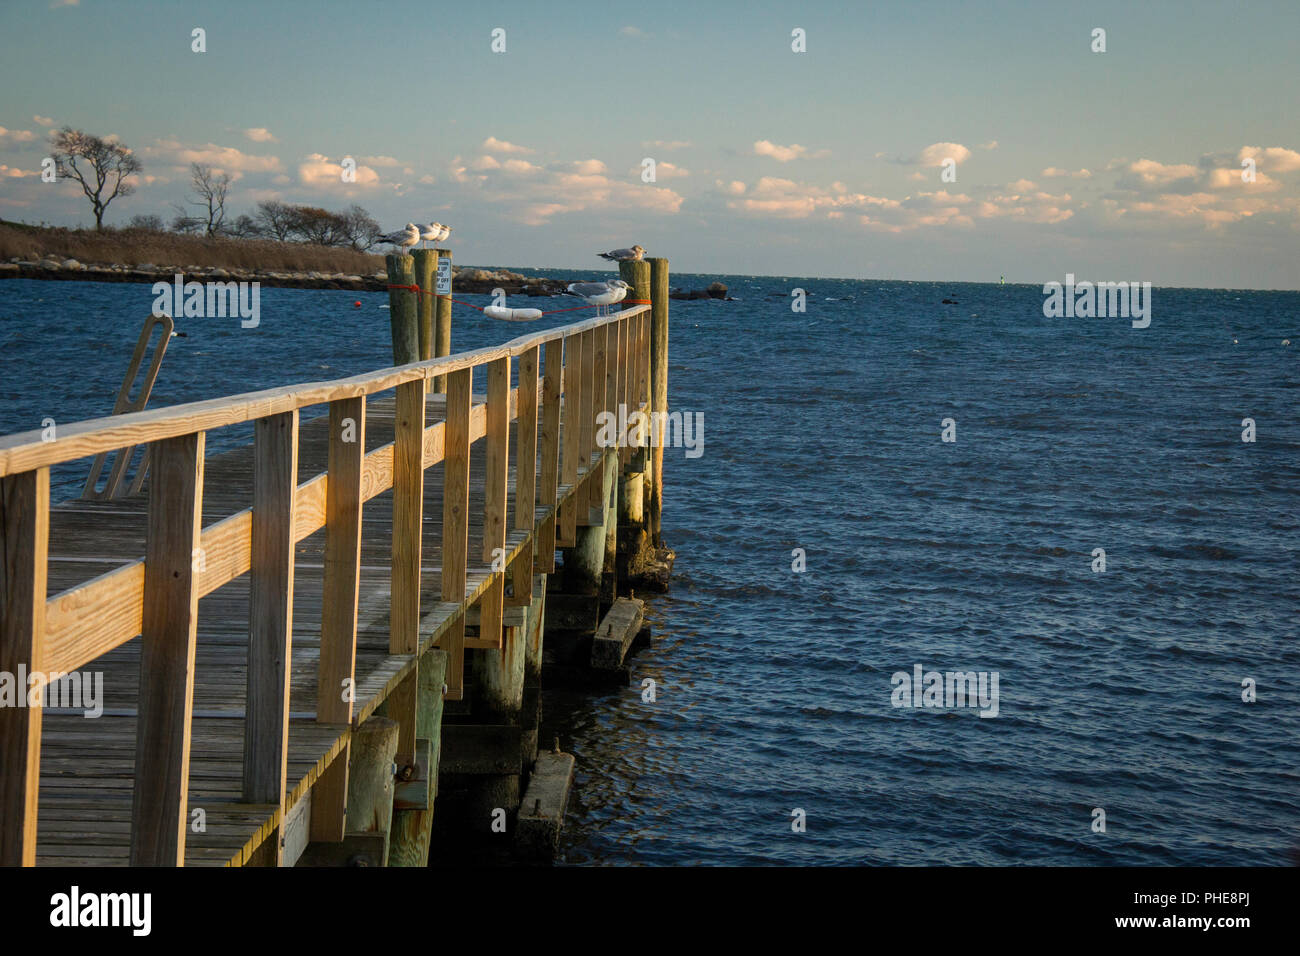 dock leading to the ocean, lit from the side at sunset - Stock Image